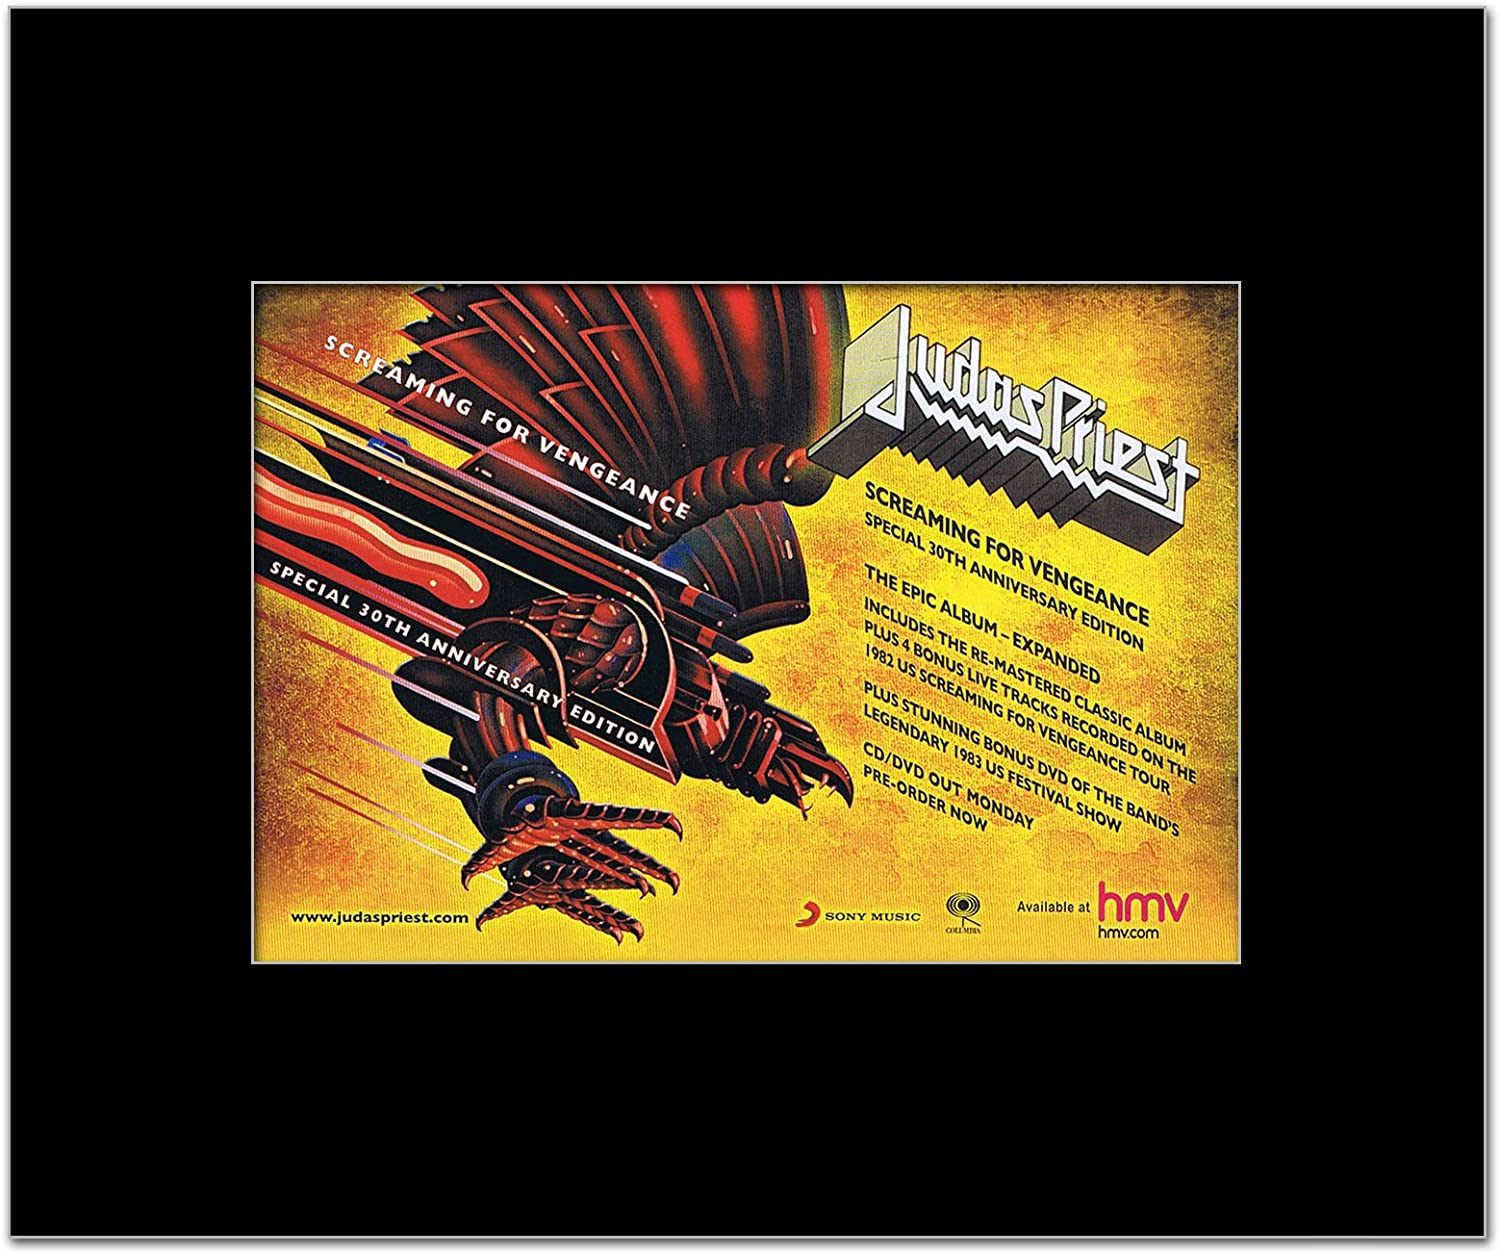 Amazon Com Music Ad World Judas Priest Screaming For Vengeance